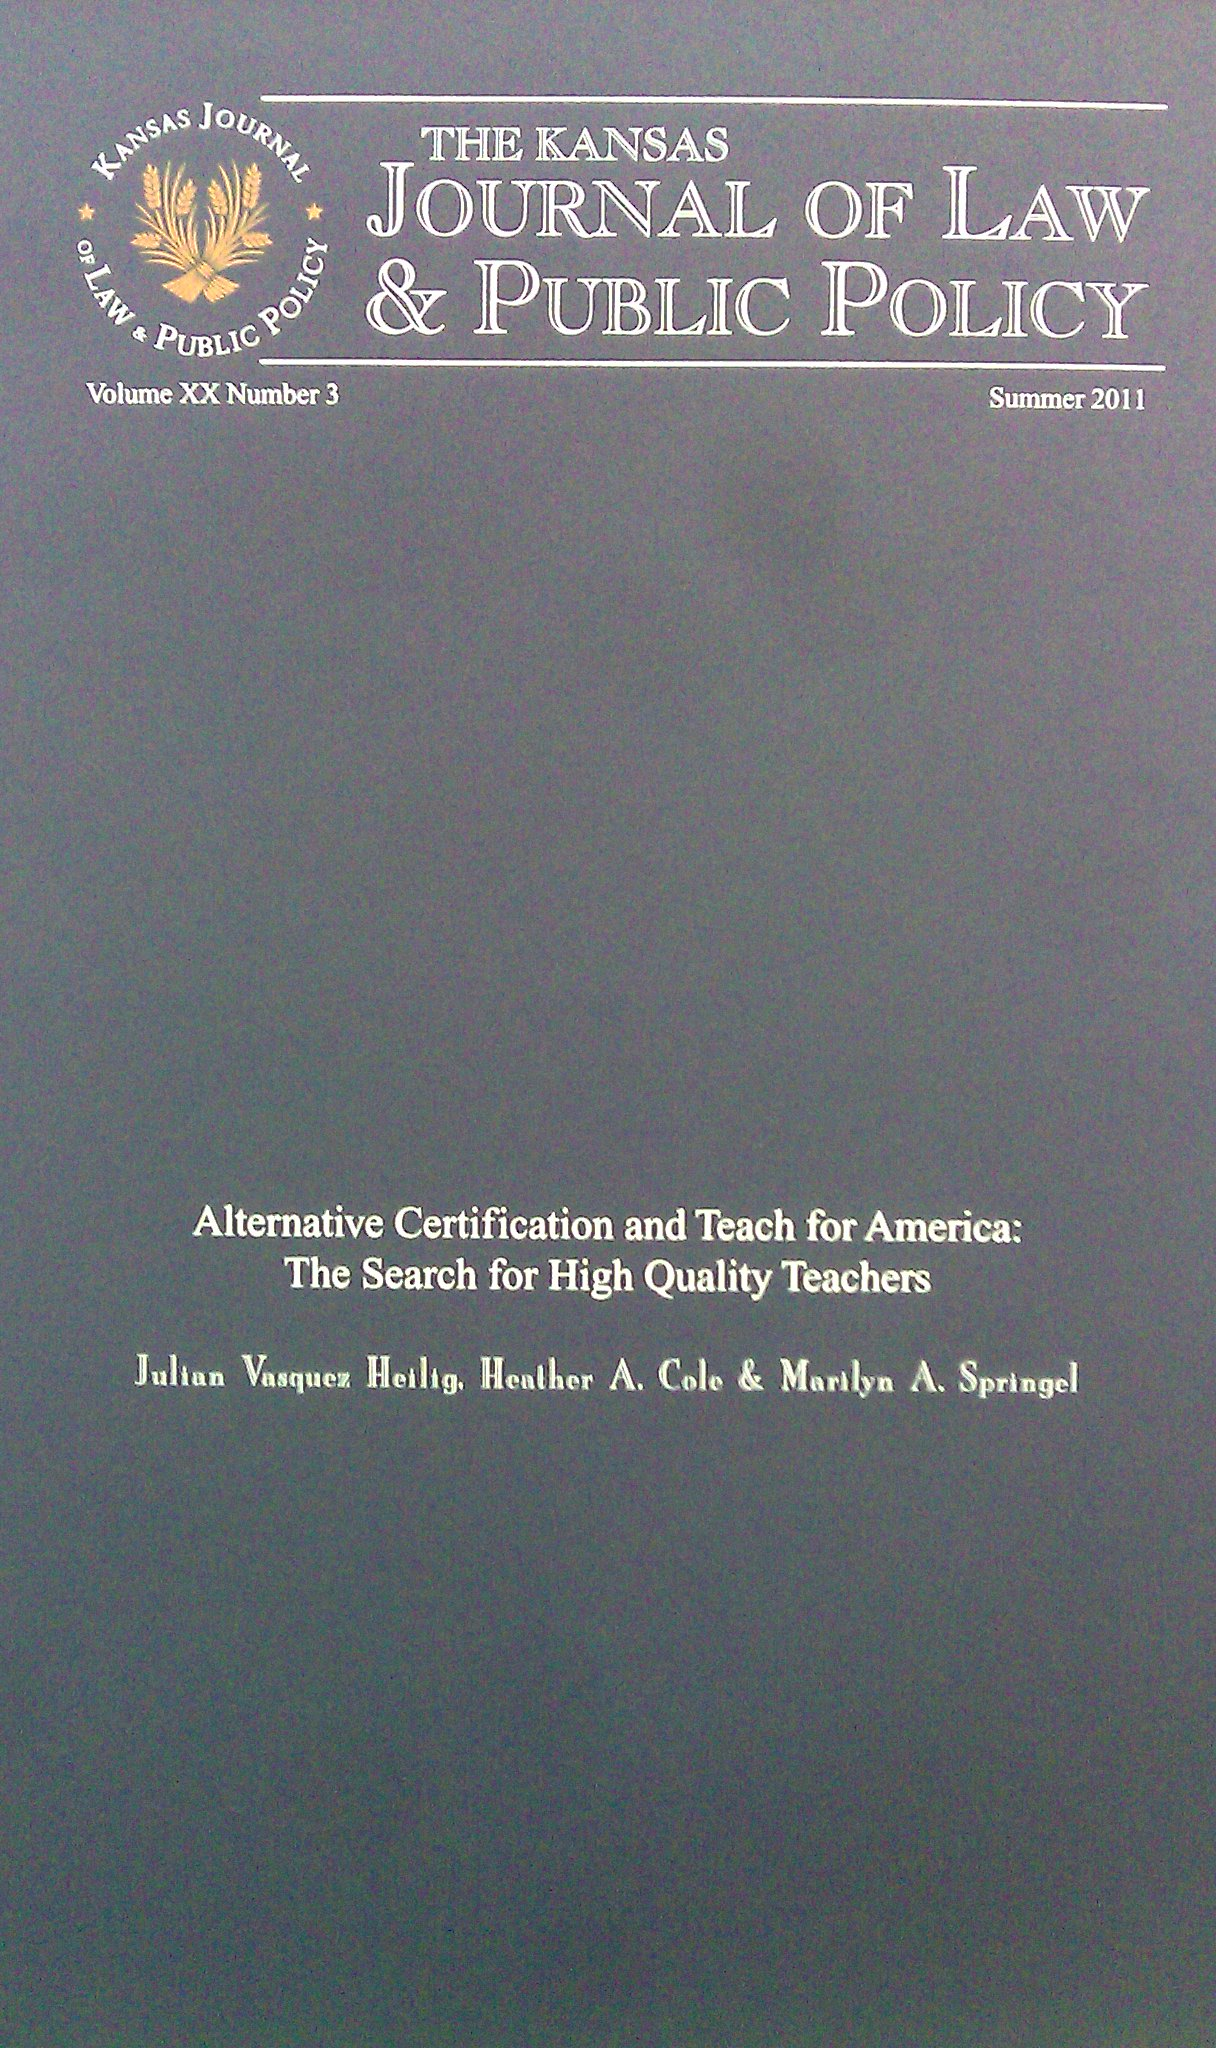 Alternative certification and teach for america the search for alternative certification and teach for america the search for high quality teachers kansas journal of law and public policy 203 388 412 1betcityfo Images